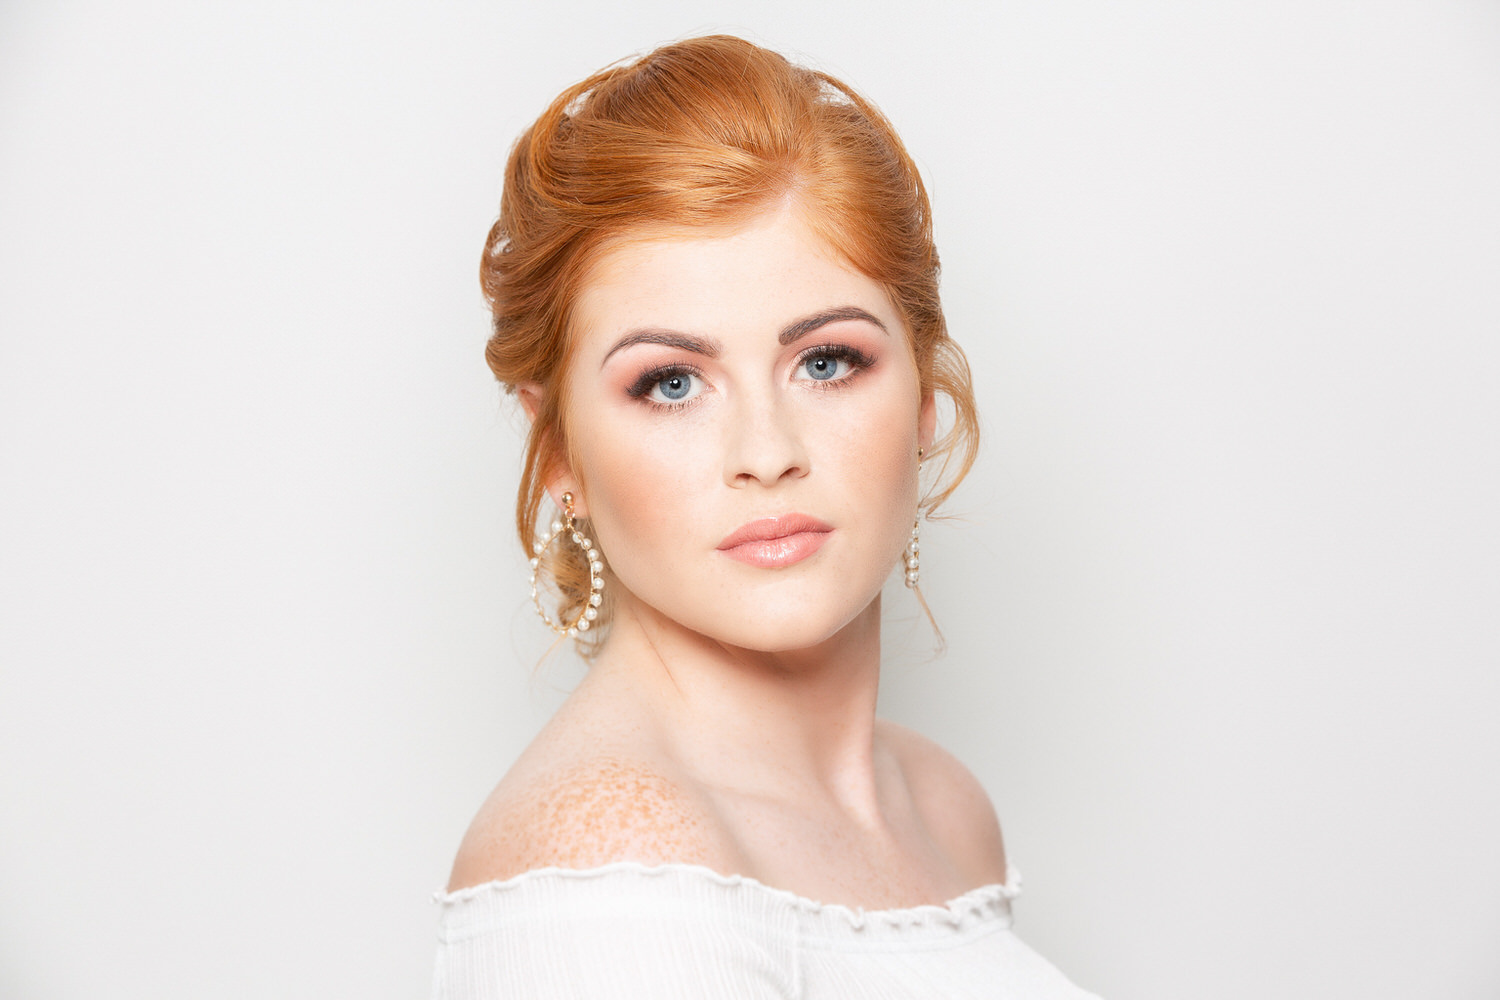 Front headshot of red haired bride looking at the camera and wearing earrings